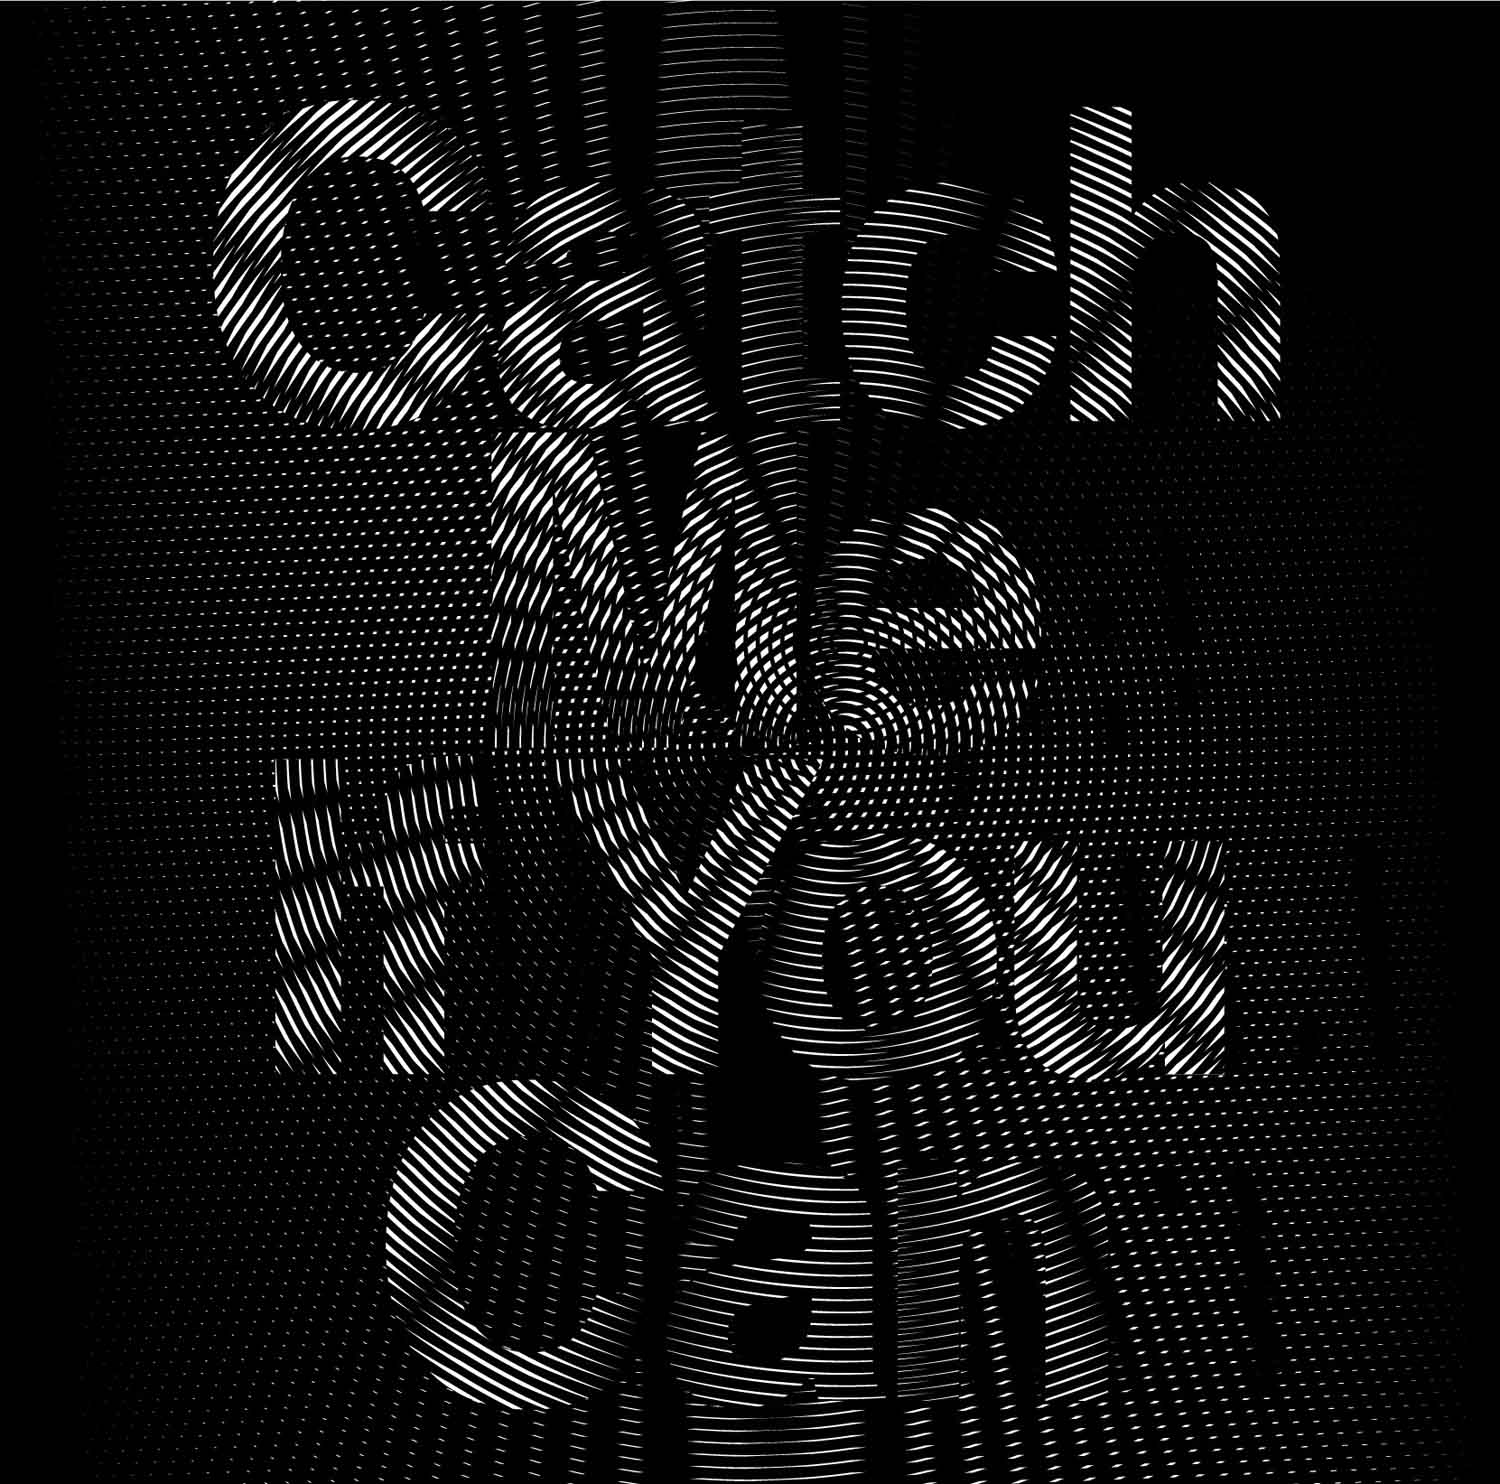 Girls Generation Catch Me If You Can Kpop Lyrics